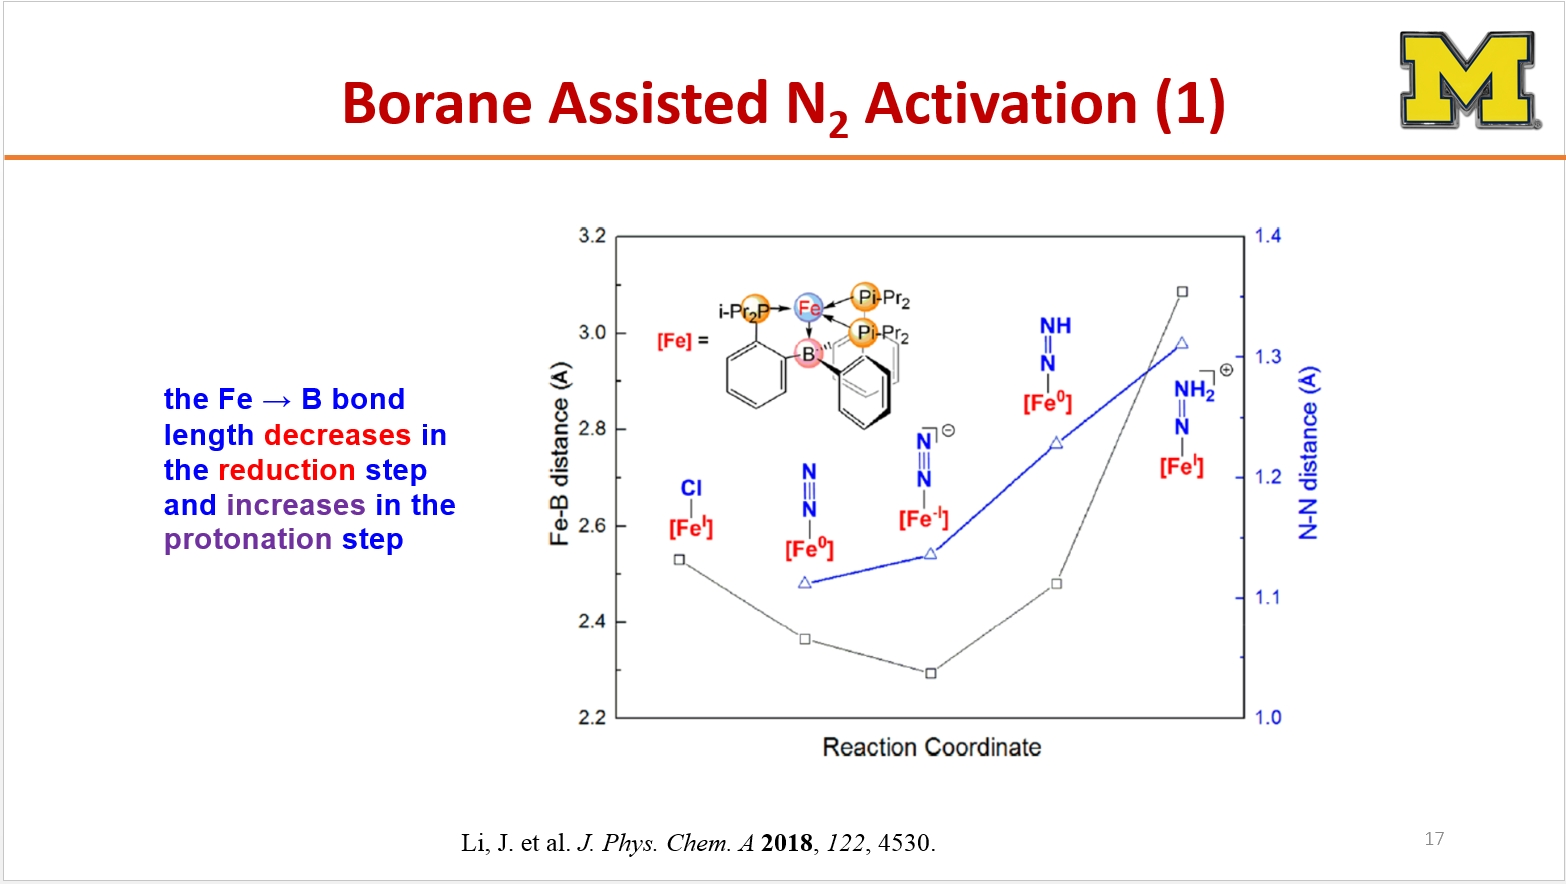 a diagram of Borane Assisted n2 activation - the fe to b bond length decreases in the reduction step and increases in the  protonation step